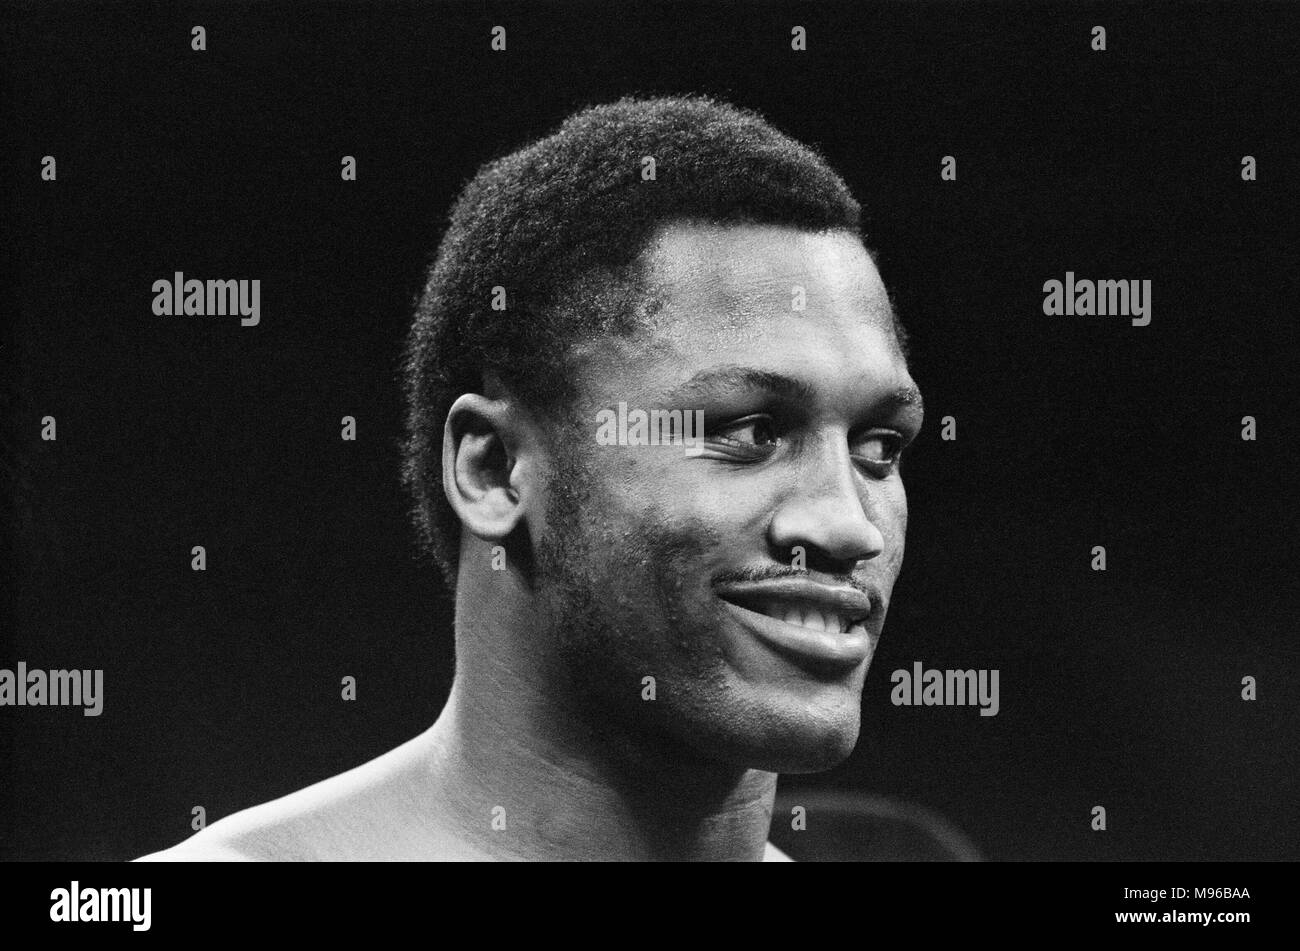 The Fight of the Century (also known as The Fight) is the title boxing writers and historians have given to the boxing match between champion Joe Frazier (26–0, 23 KOs) and challenger Muhammad Ali (31–0, 25 KOs), held on March 8, 1971, at Madison Square Garden in New York City. Frazier won in 15 rounds via unanimous decision. It was the first time that two undefeated boxers fought each other for the heavyweight title. (Picture) Joe Frazier at the Weigh-in for 'The Fight of the Century.' 8th March 1971 - Stock Image